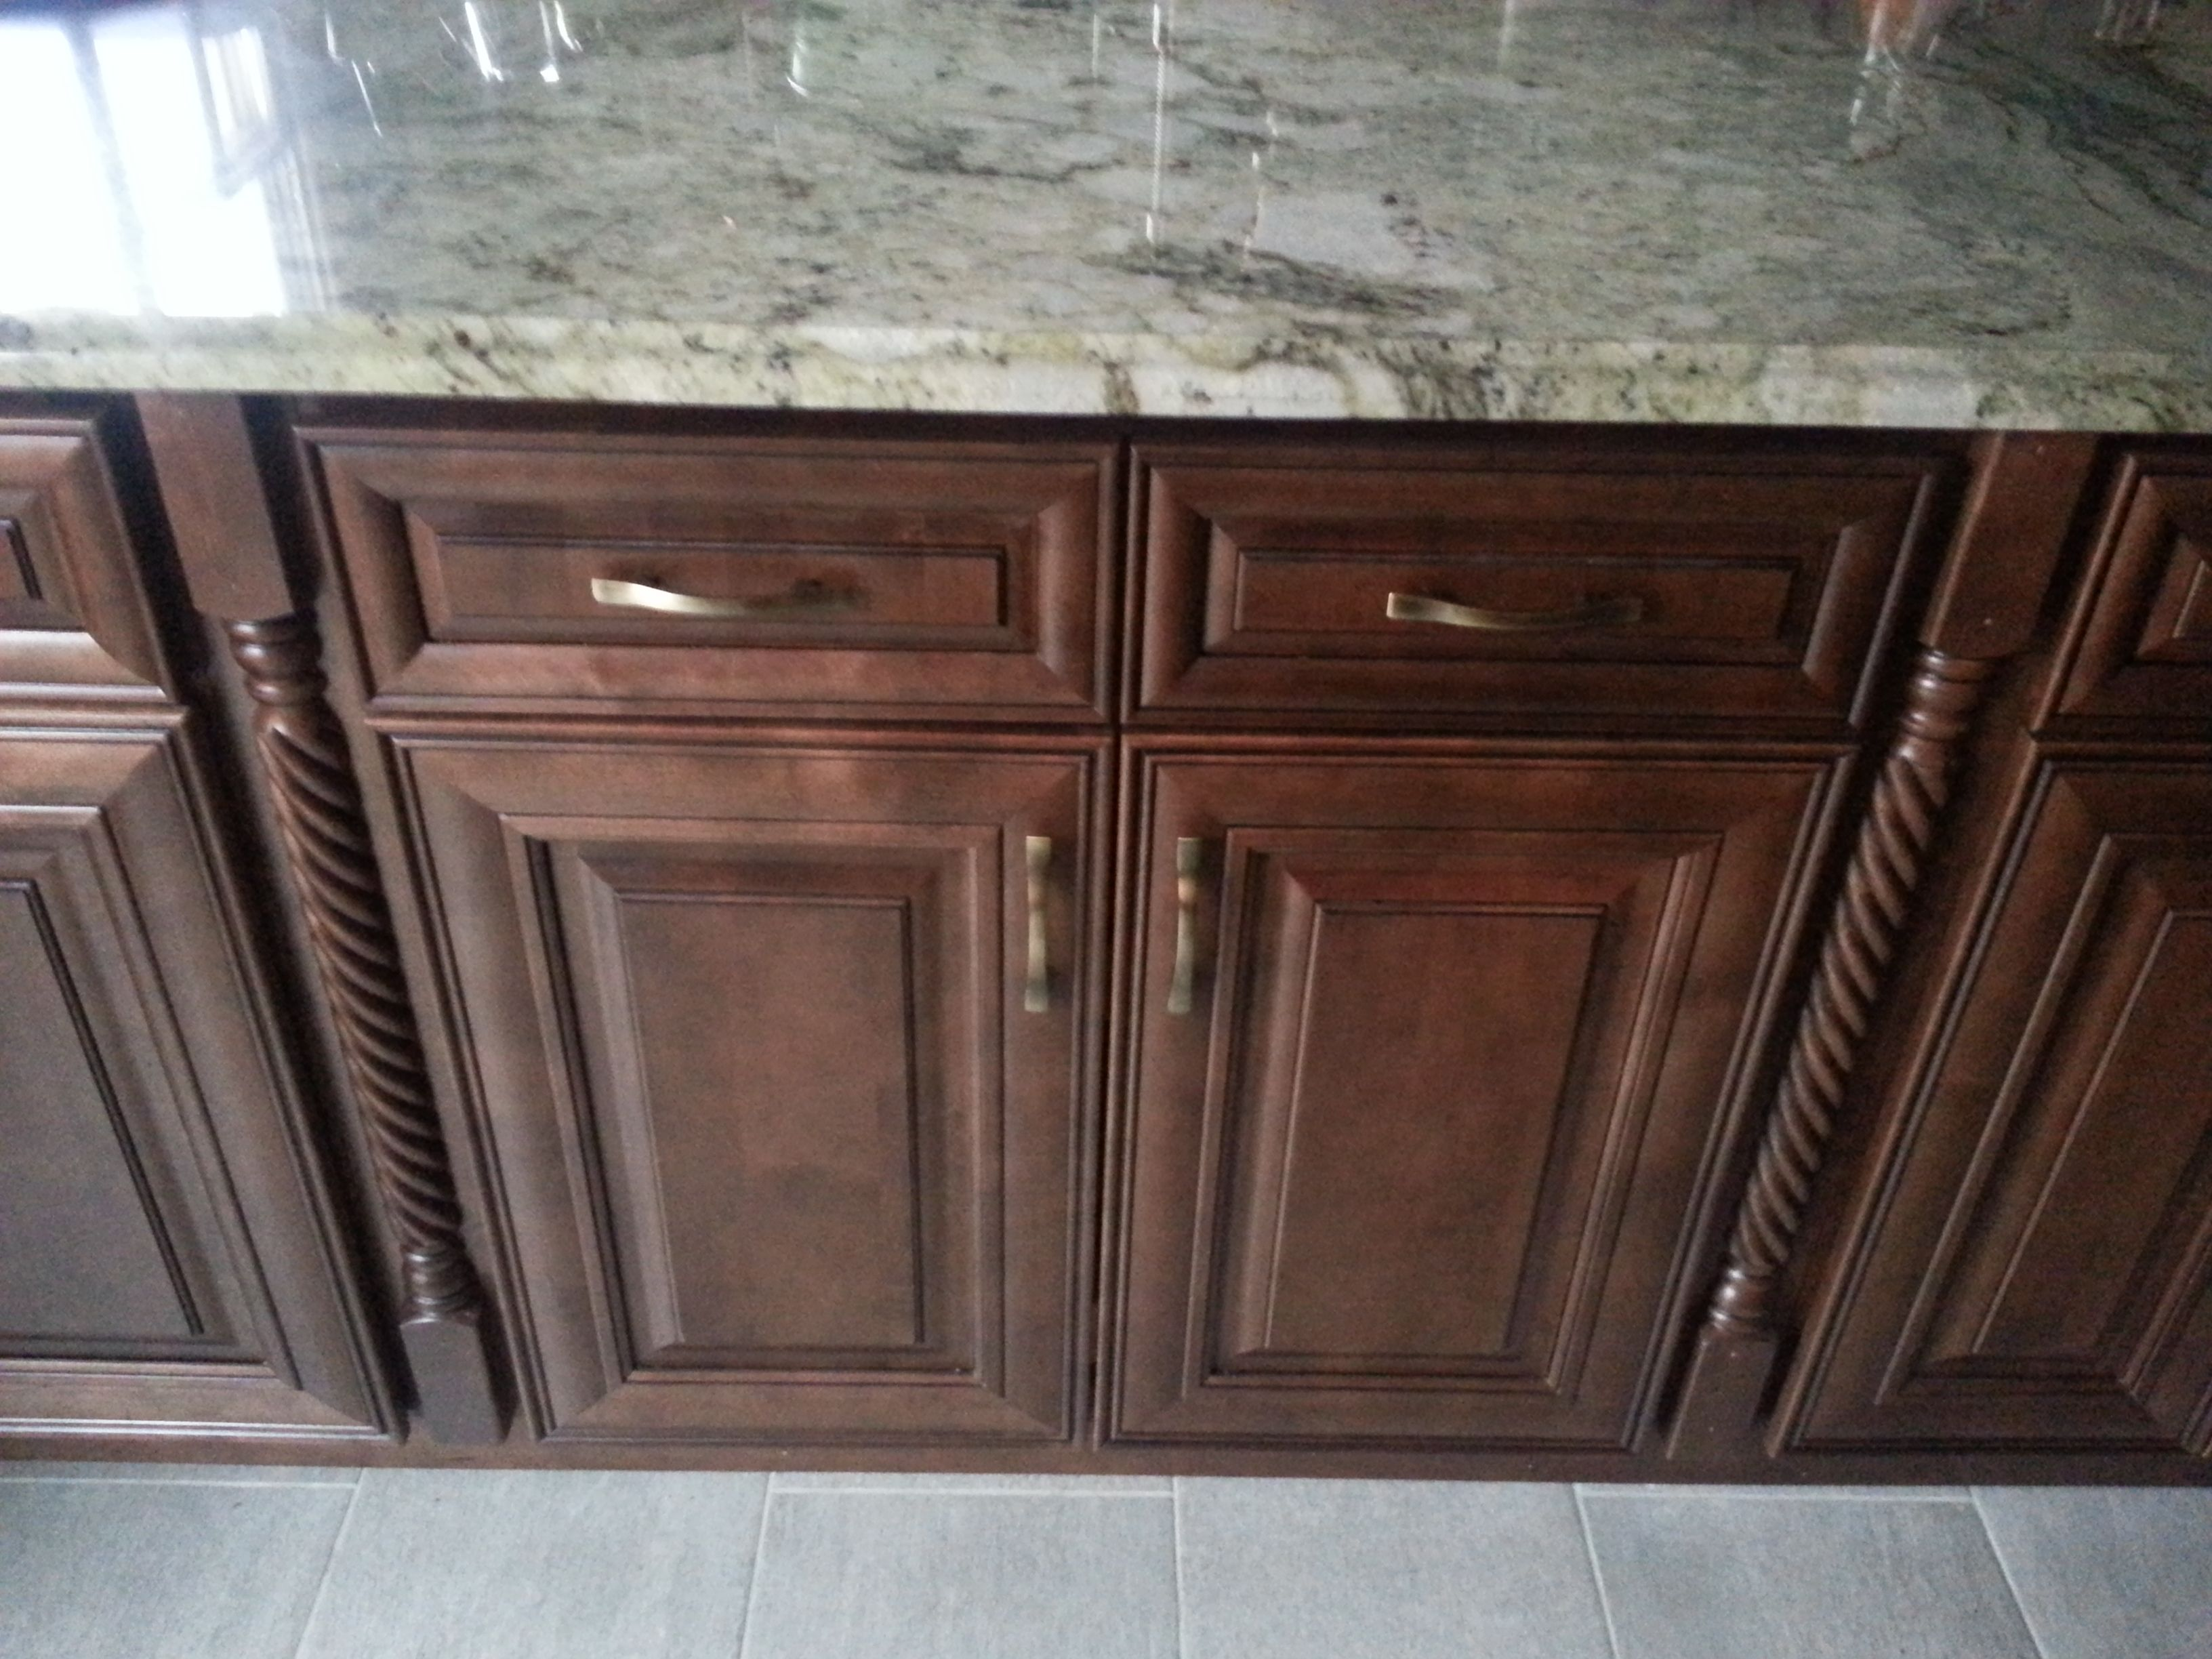 telstar cabinetry in morris county new jersey nj kitchen cabinets Grand JK Cabinetry Quality All Wood Cabinetry Affordable Wholesale Distribution Kitchen Bath and